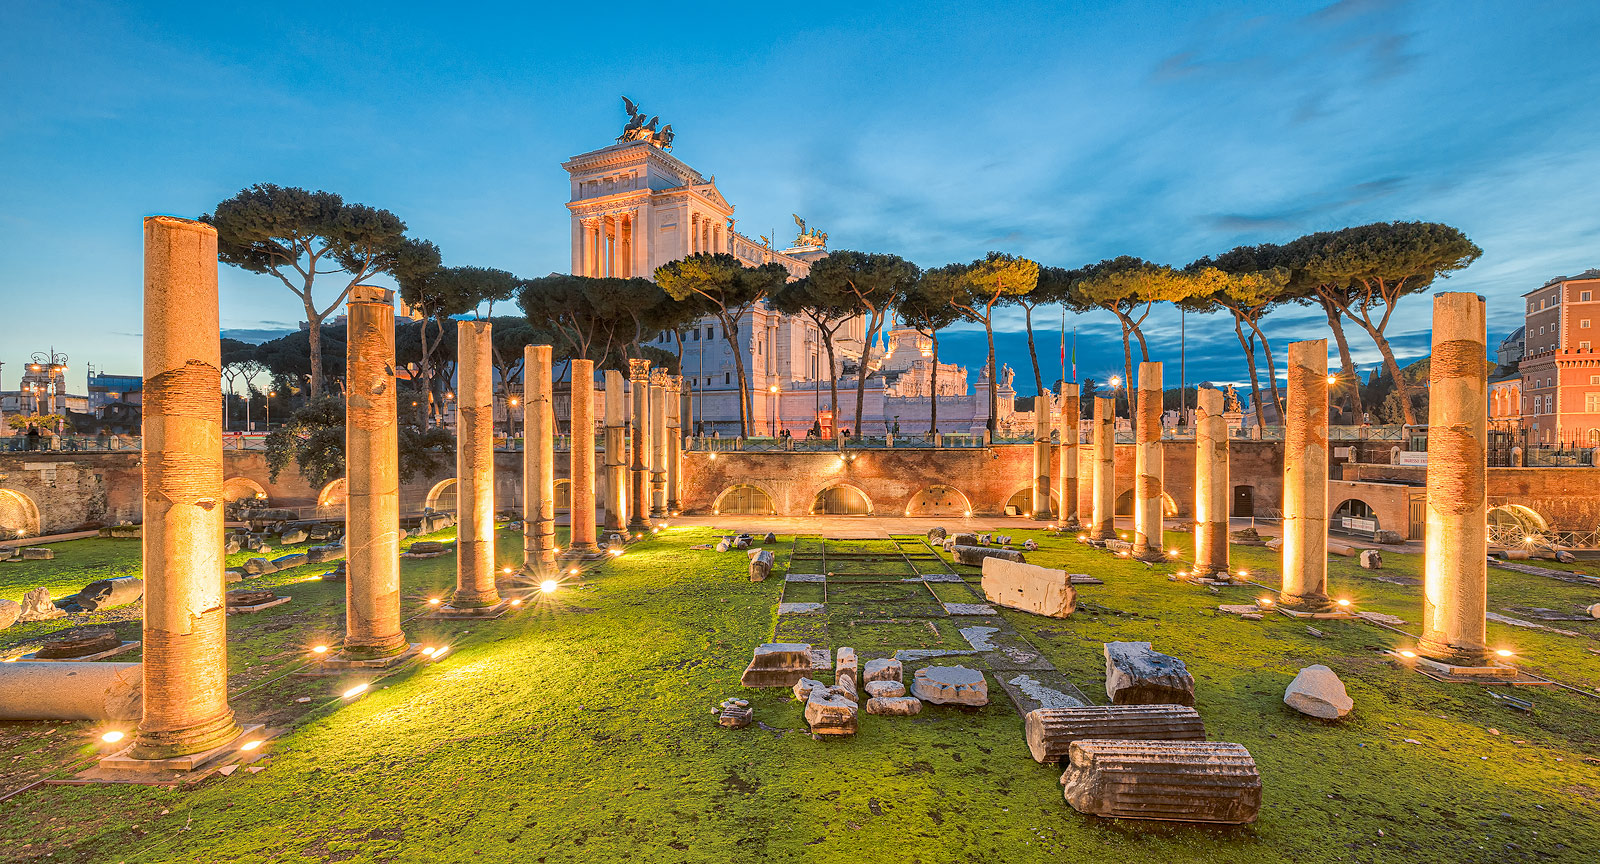 Beeldbewerking - The Ruins of Roman's forum in Rome with a beautiful colorful sky in the background - Rome, Italy - Travel image